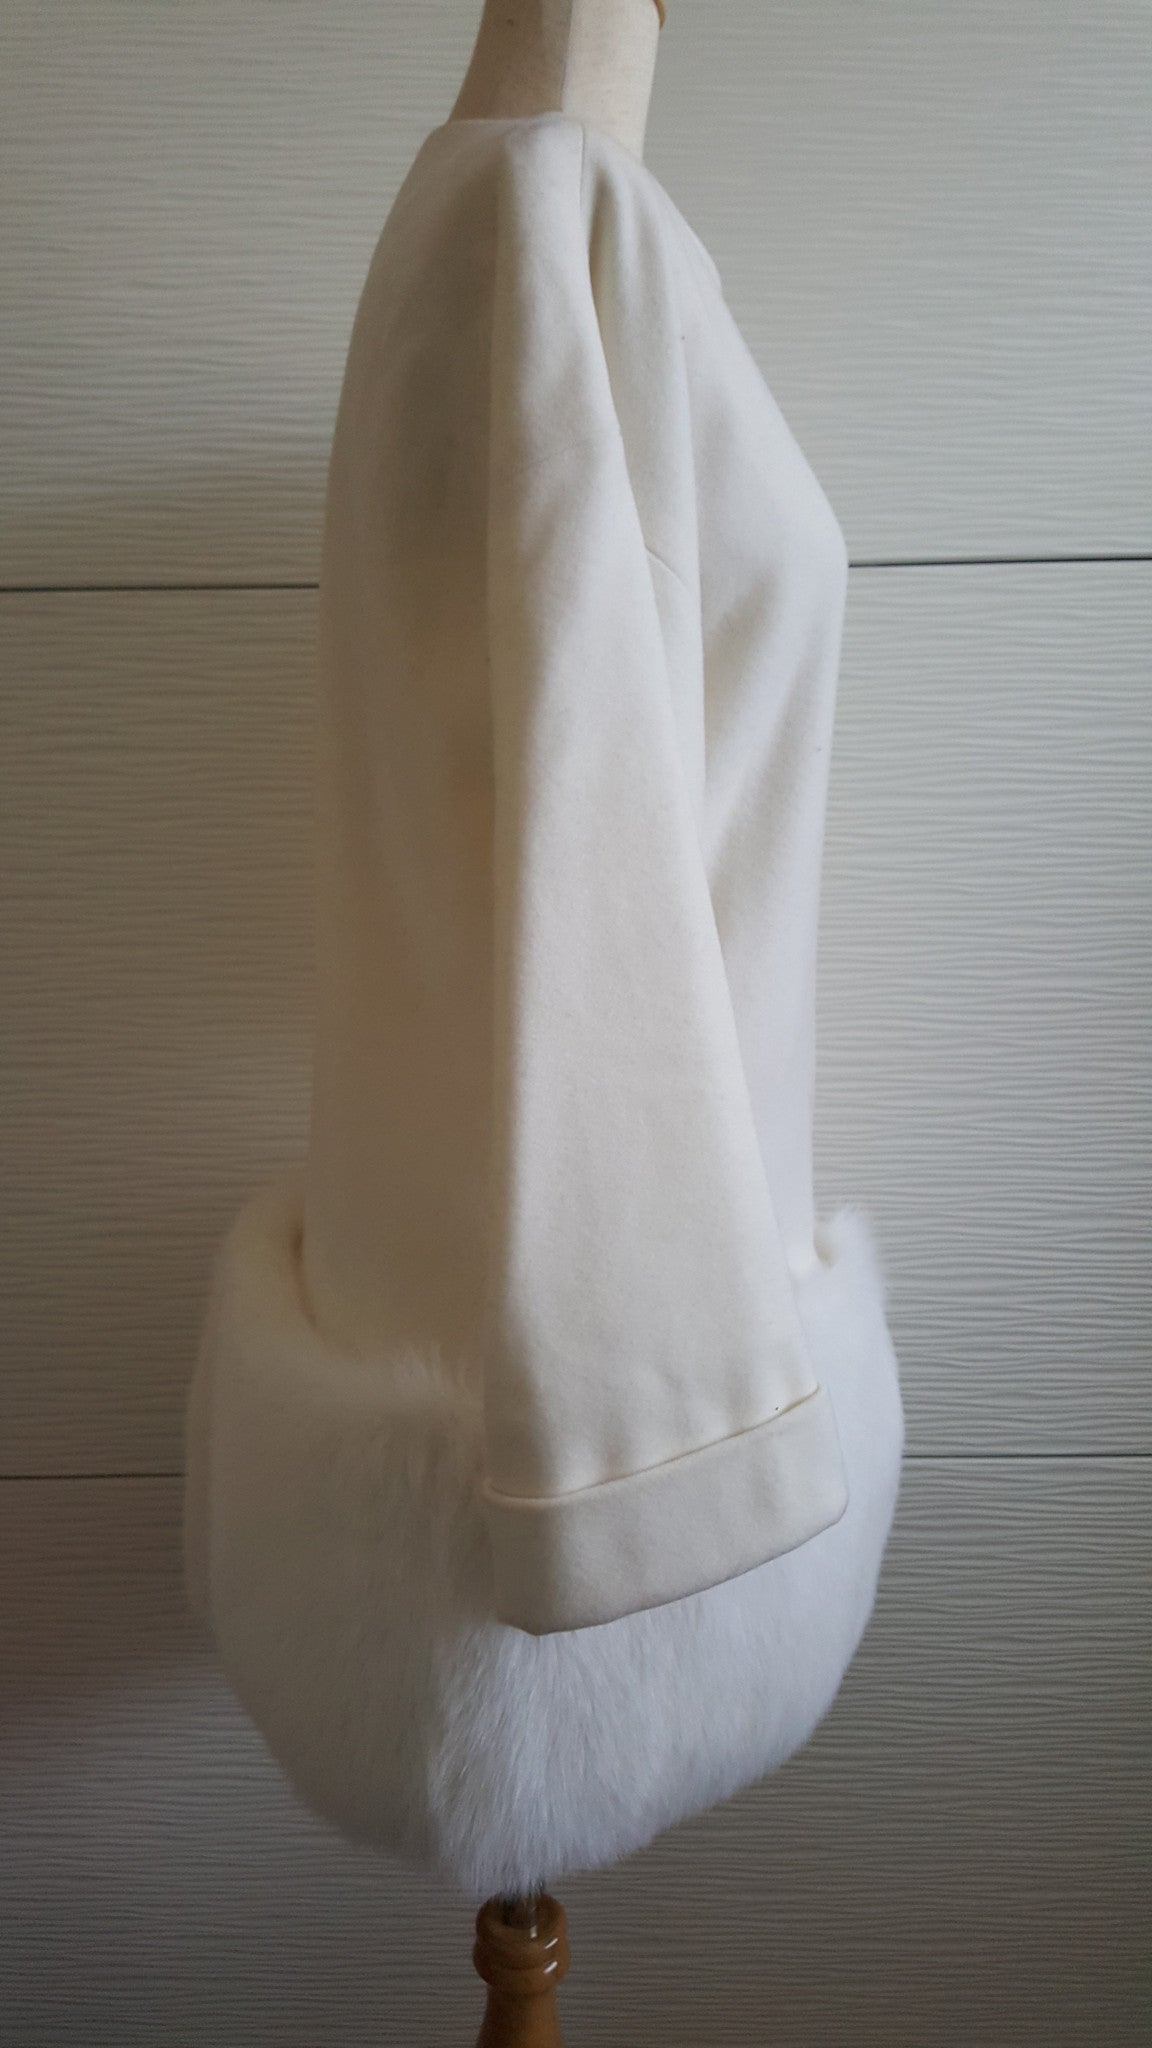 MCH PEARL WHITE WOOL JACKET WITH MINK TRIM - SIZE 6/ SMALL